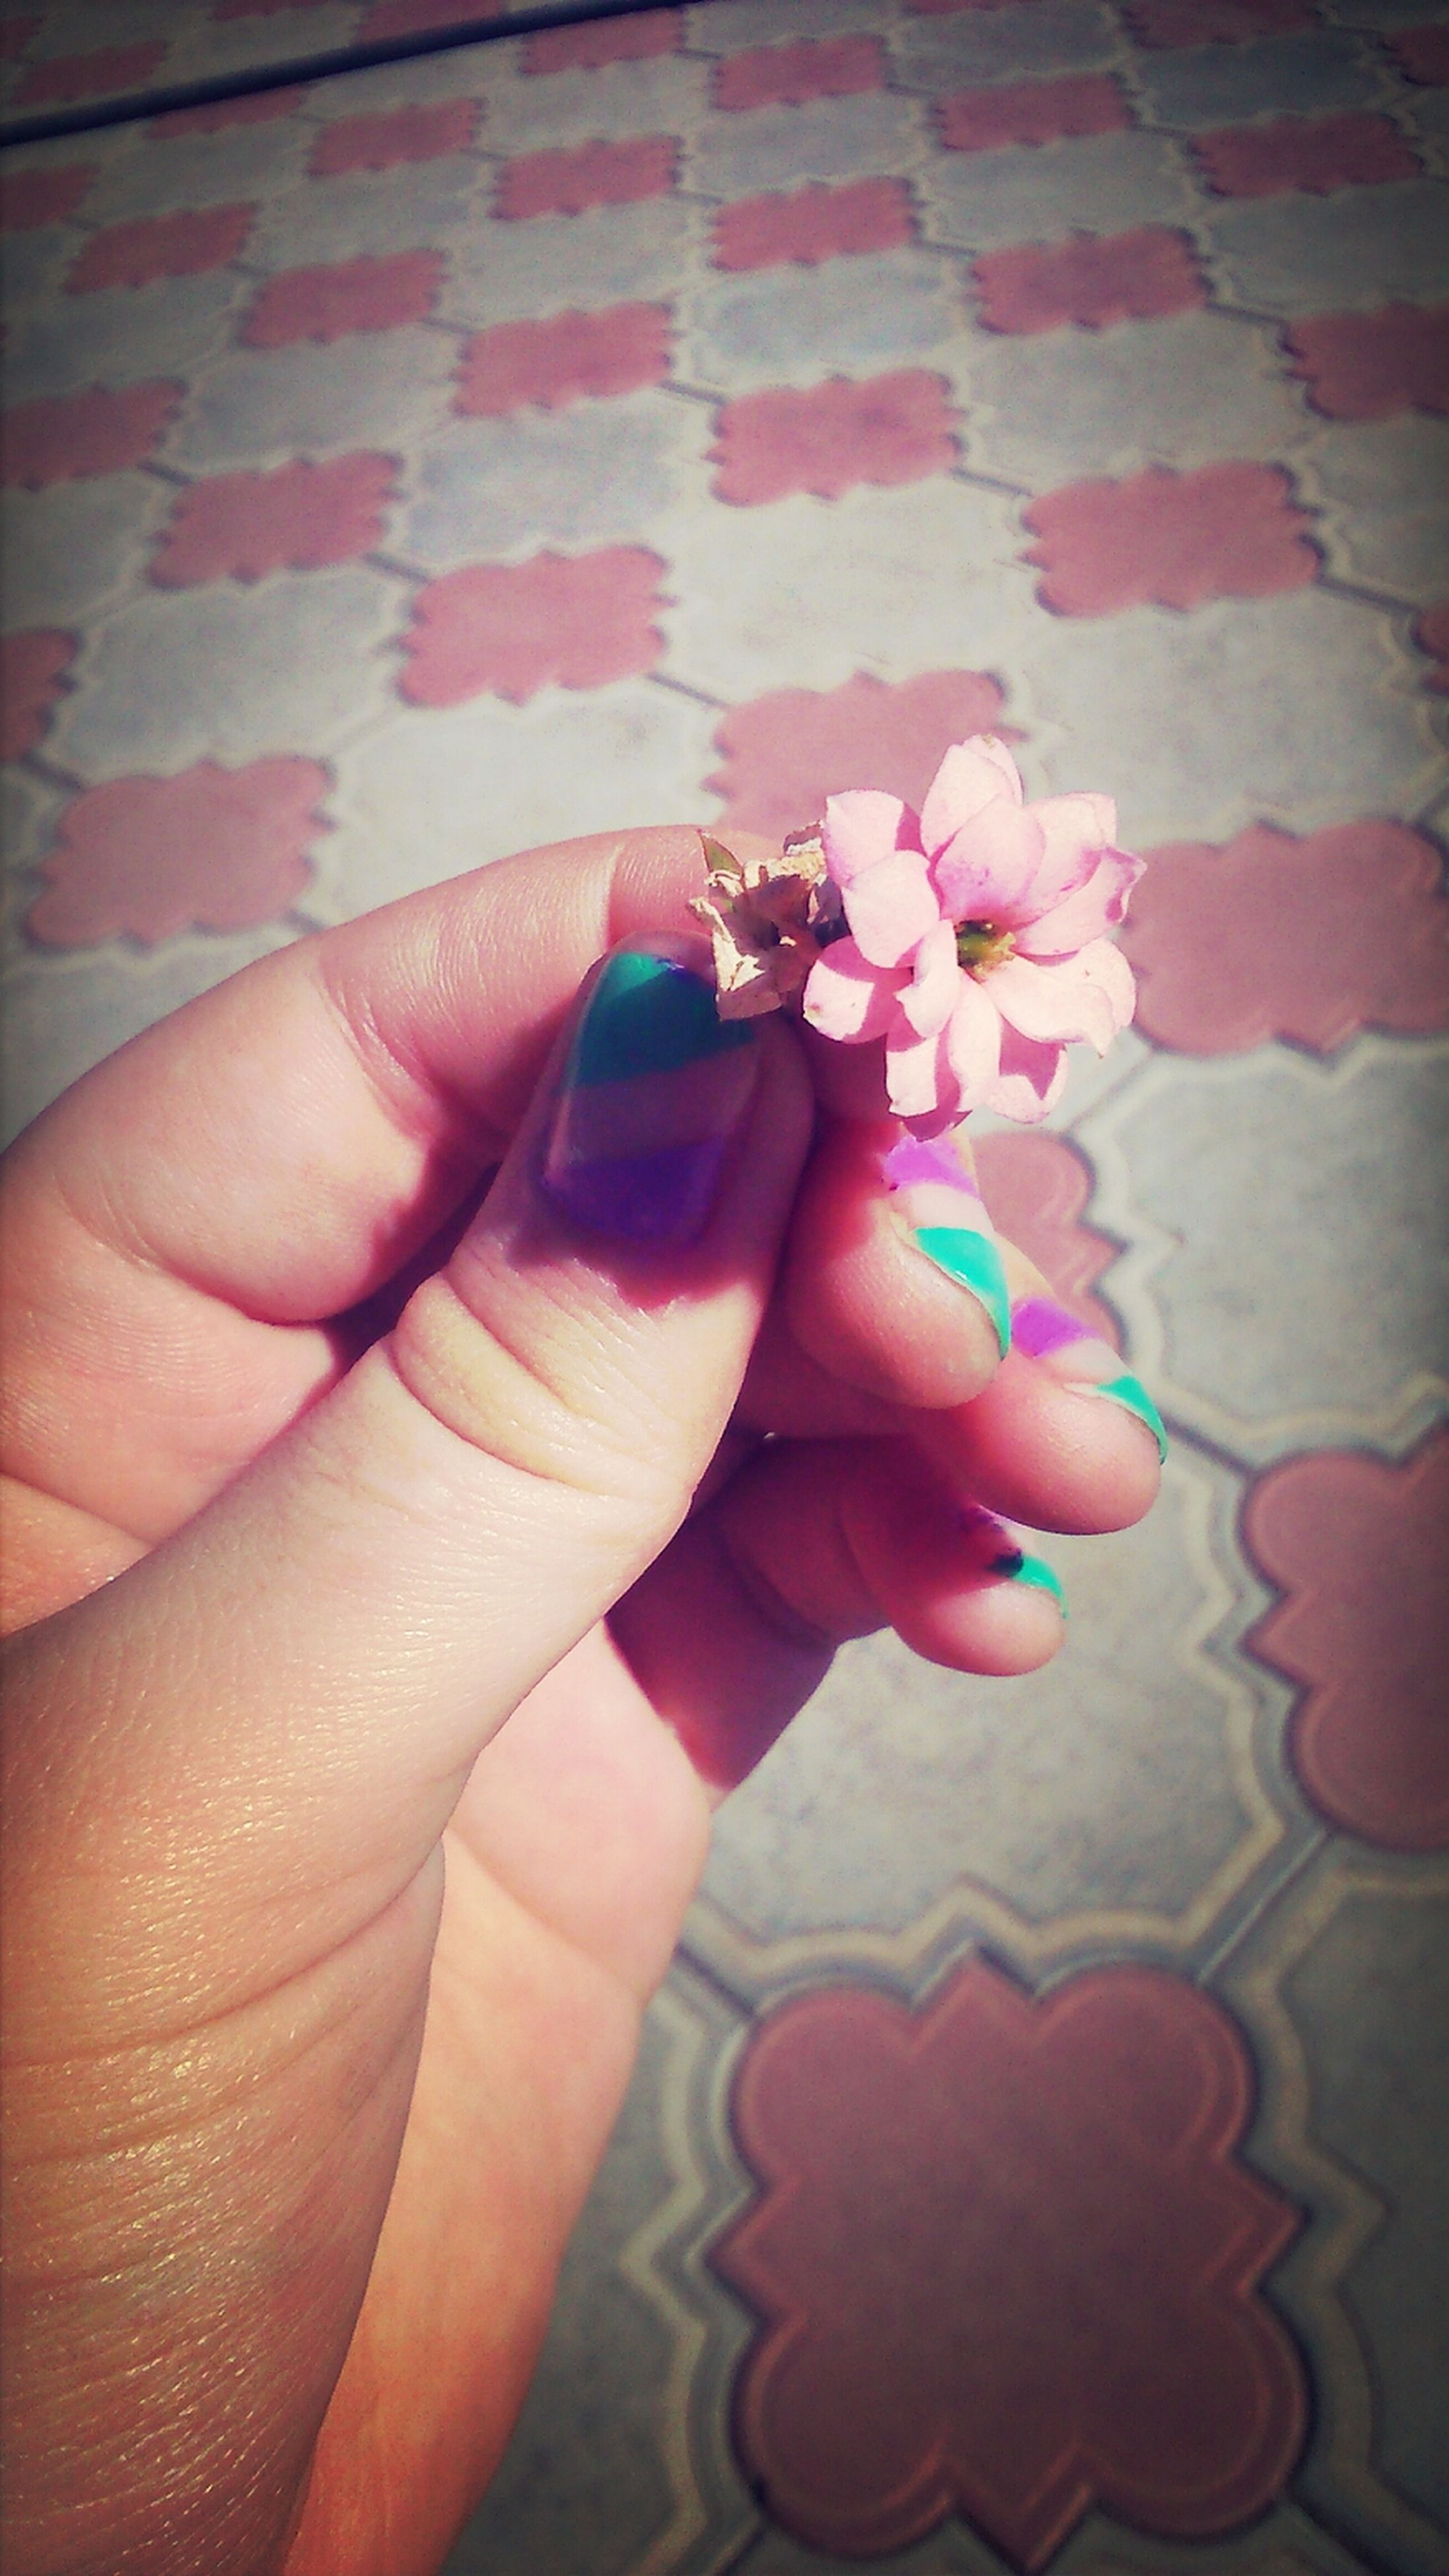 person, flower, holding, part of, indoors, human finger, cropped, fragility, wall - building feature, lifestyles, close-up, petal, pink color, unrecognizable person, high angle view, leisure activity